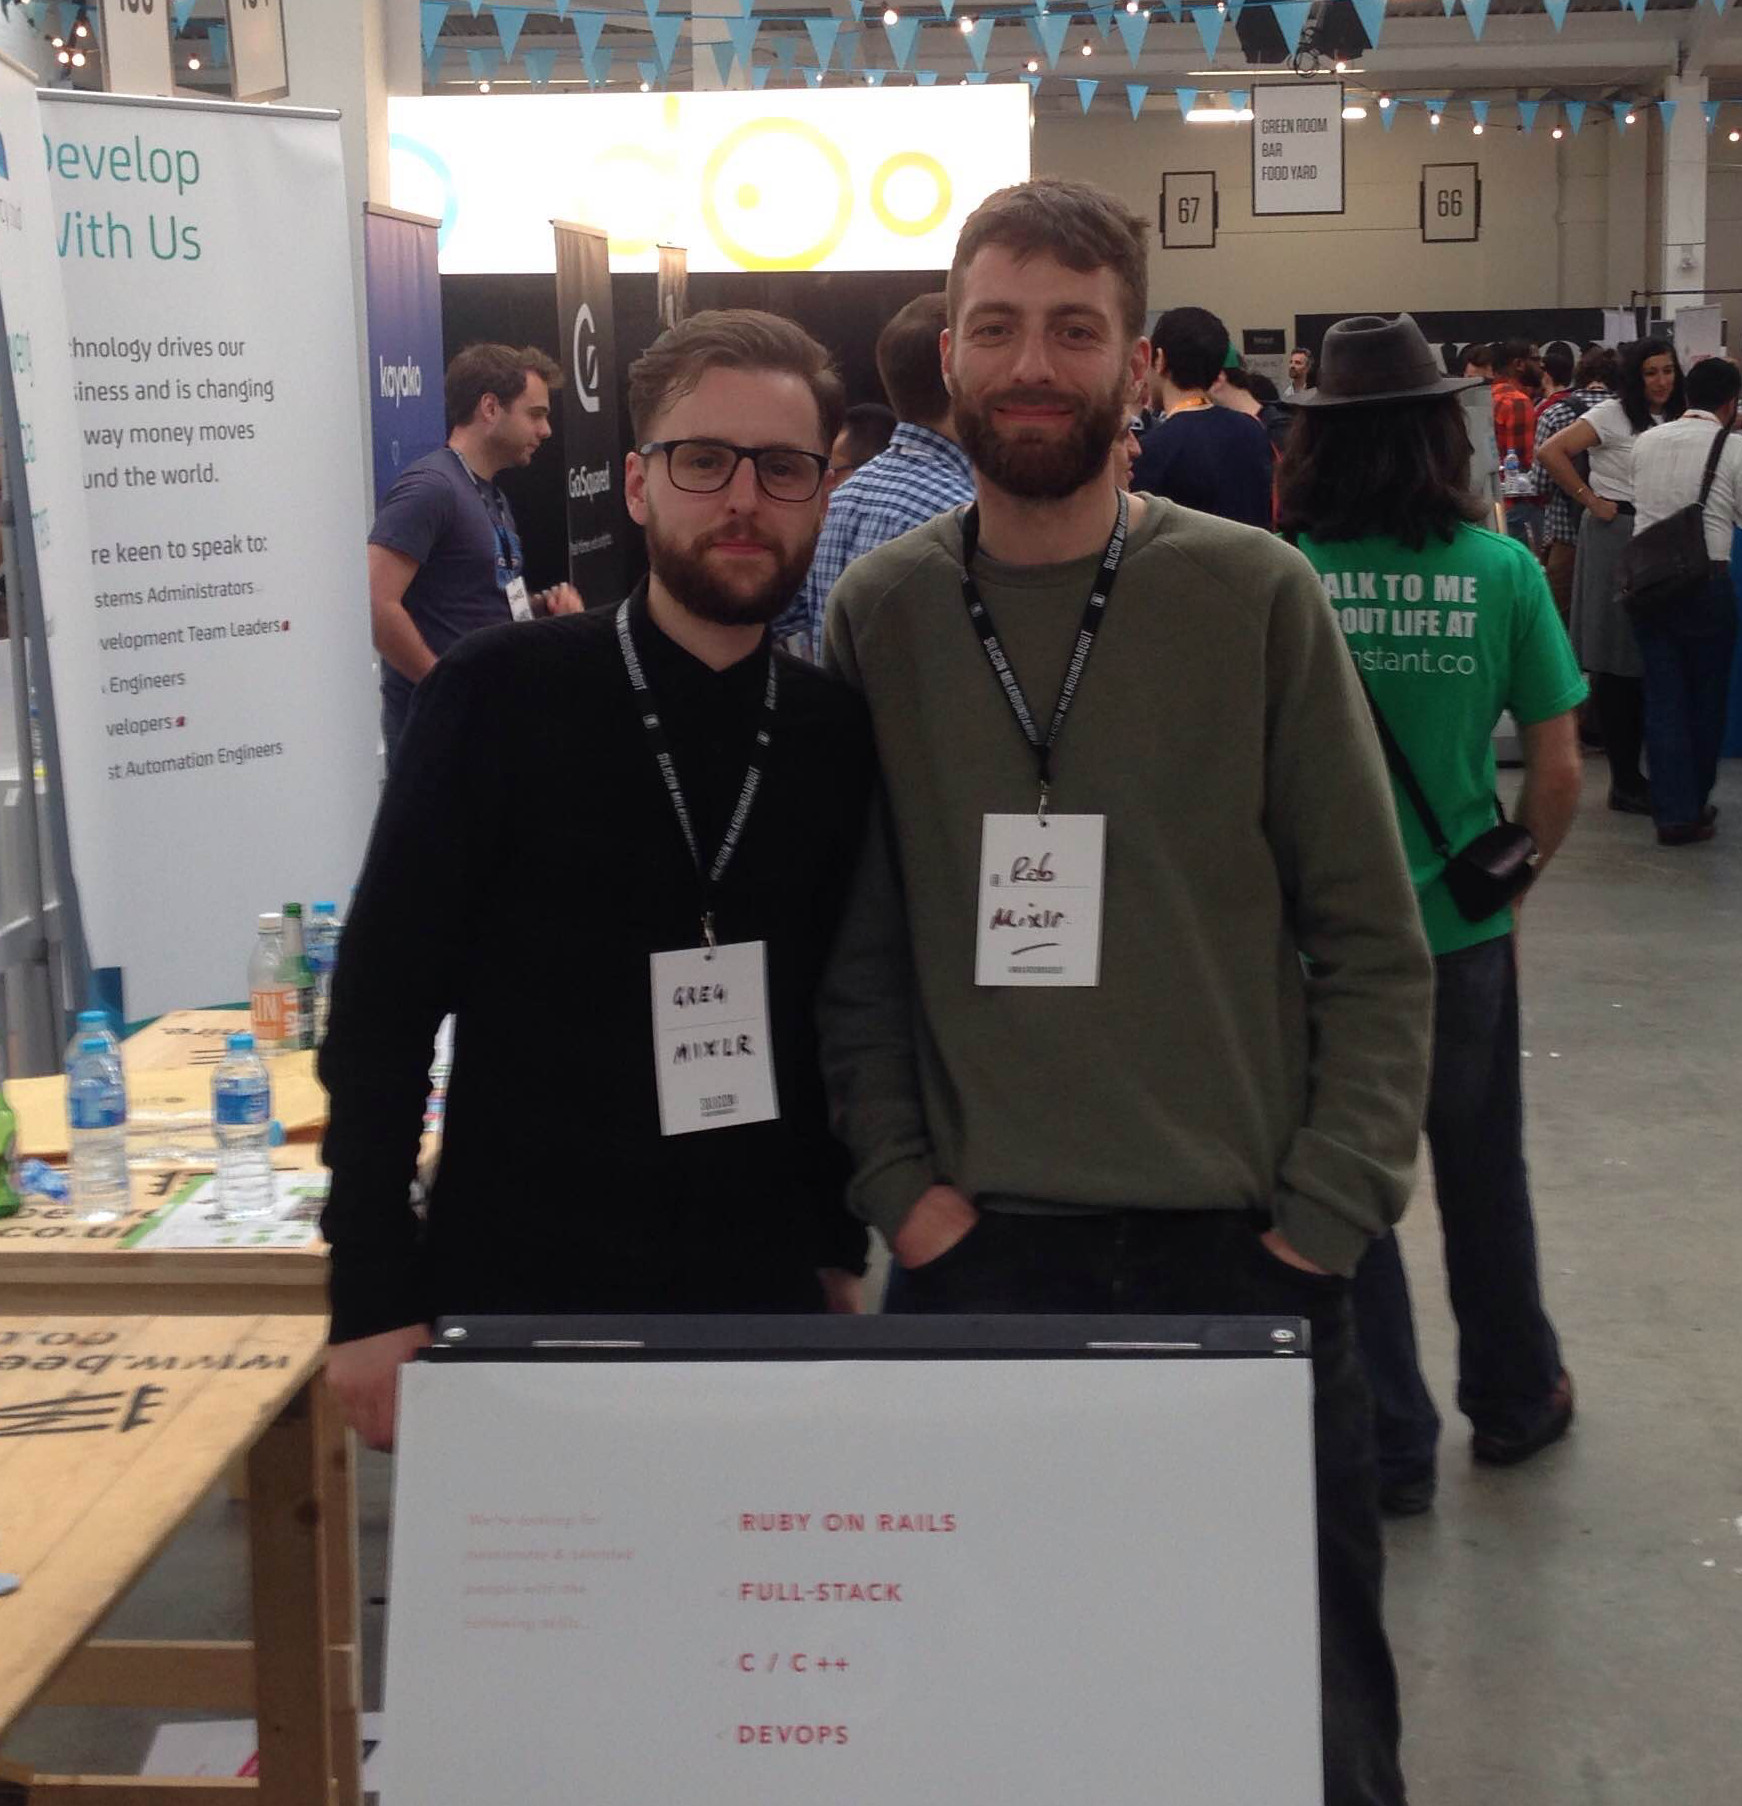 Mixlr's founders Greg and Rob at a previous Silicon Milkroundabout